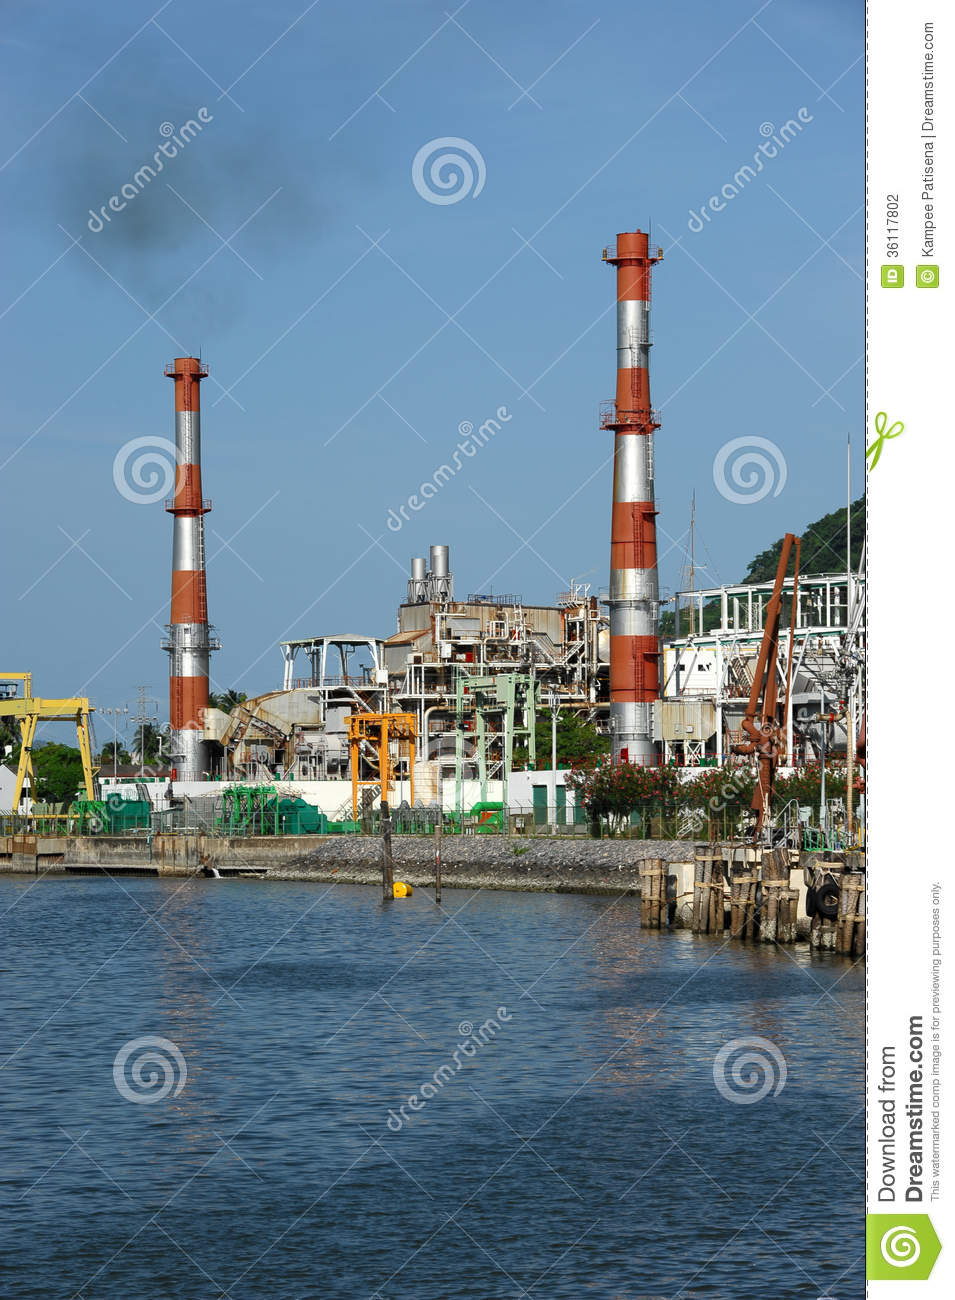 Oil Refinery Factory Near Sea Stock Photography - Image ...